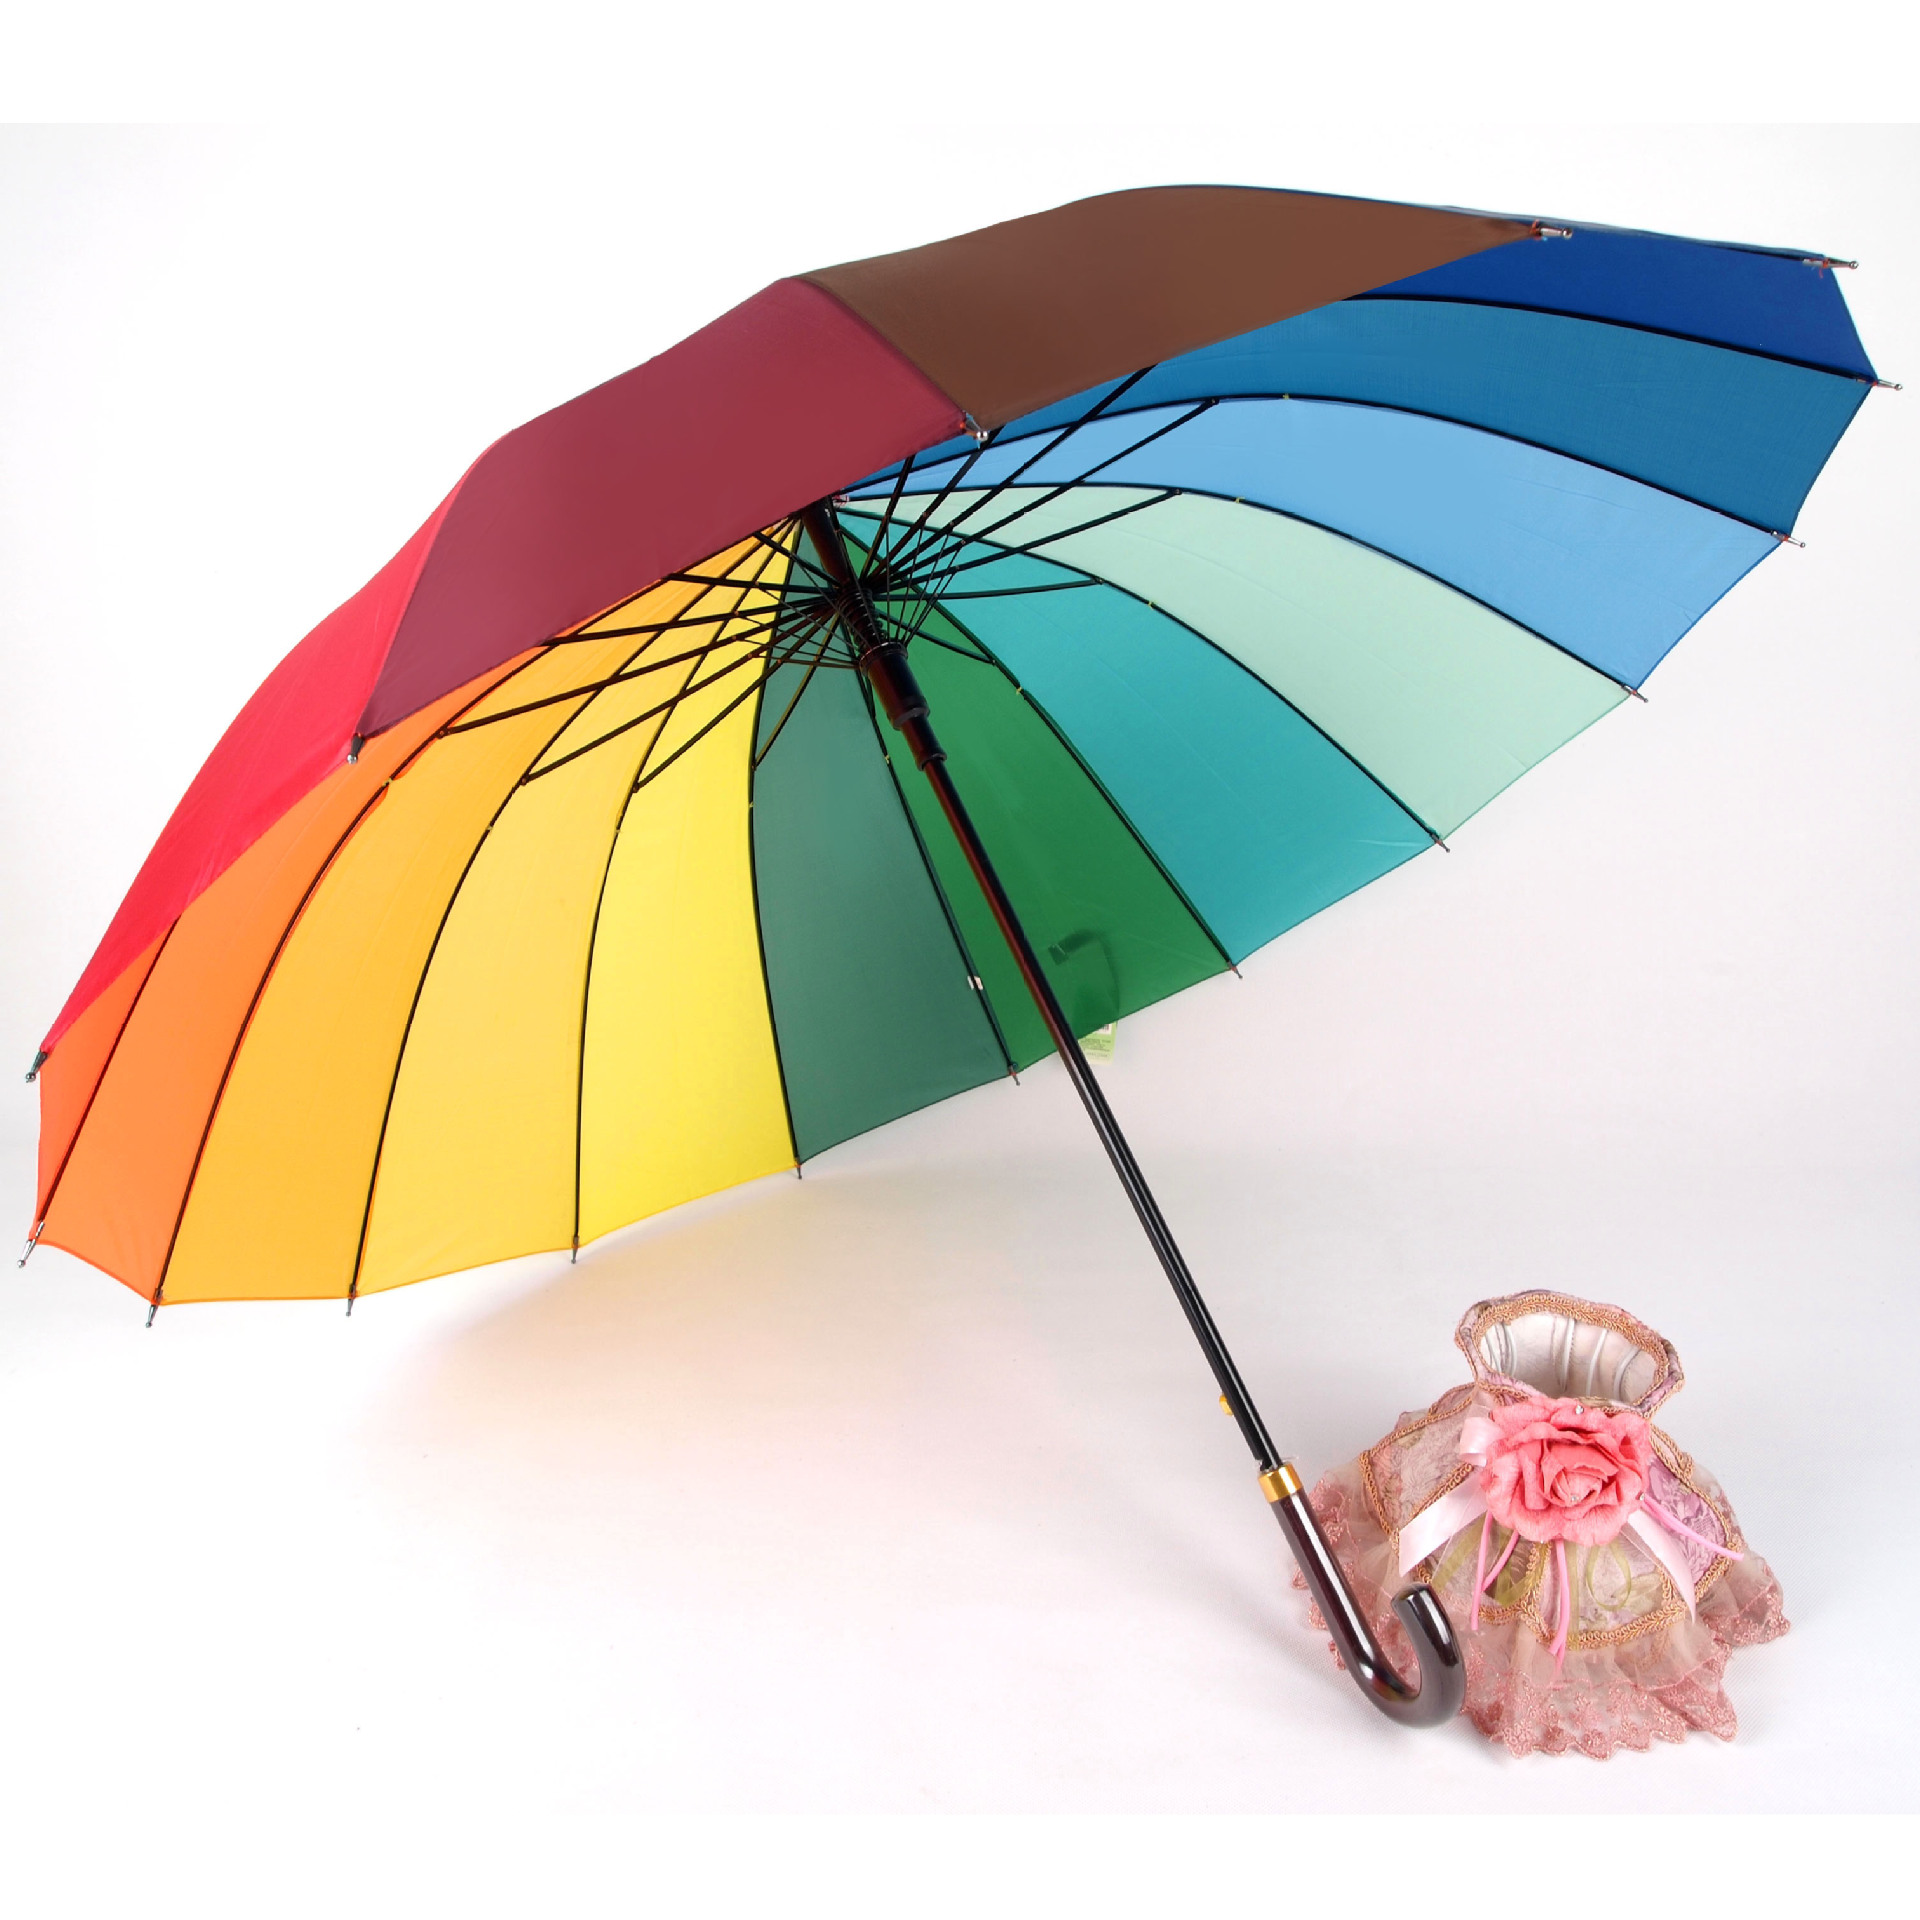 Aurora Creative Umbrella 138 UV-Protection 16K Gradient South Korea Large Rainbow Umbrella Straight Handle Advertising Umbrella